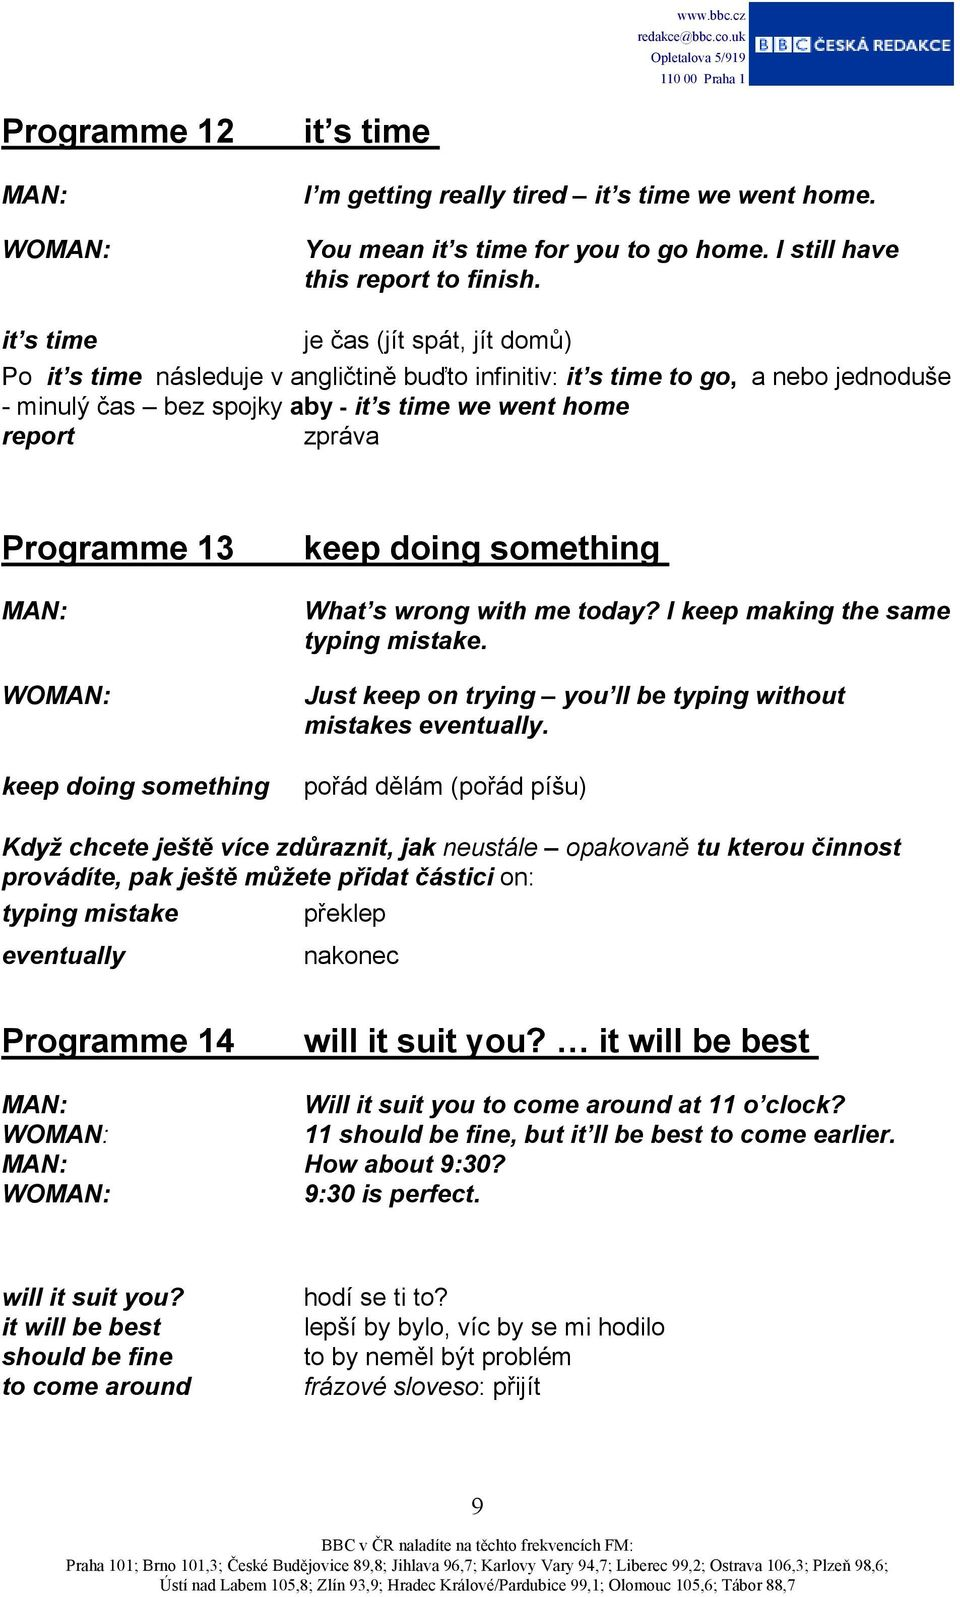 Programme 13 keep doing something keep doing something What s wrong with me today? I keep making the same typing mistake. Just keep on trying you ll be typing without mistakes eventually.